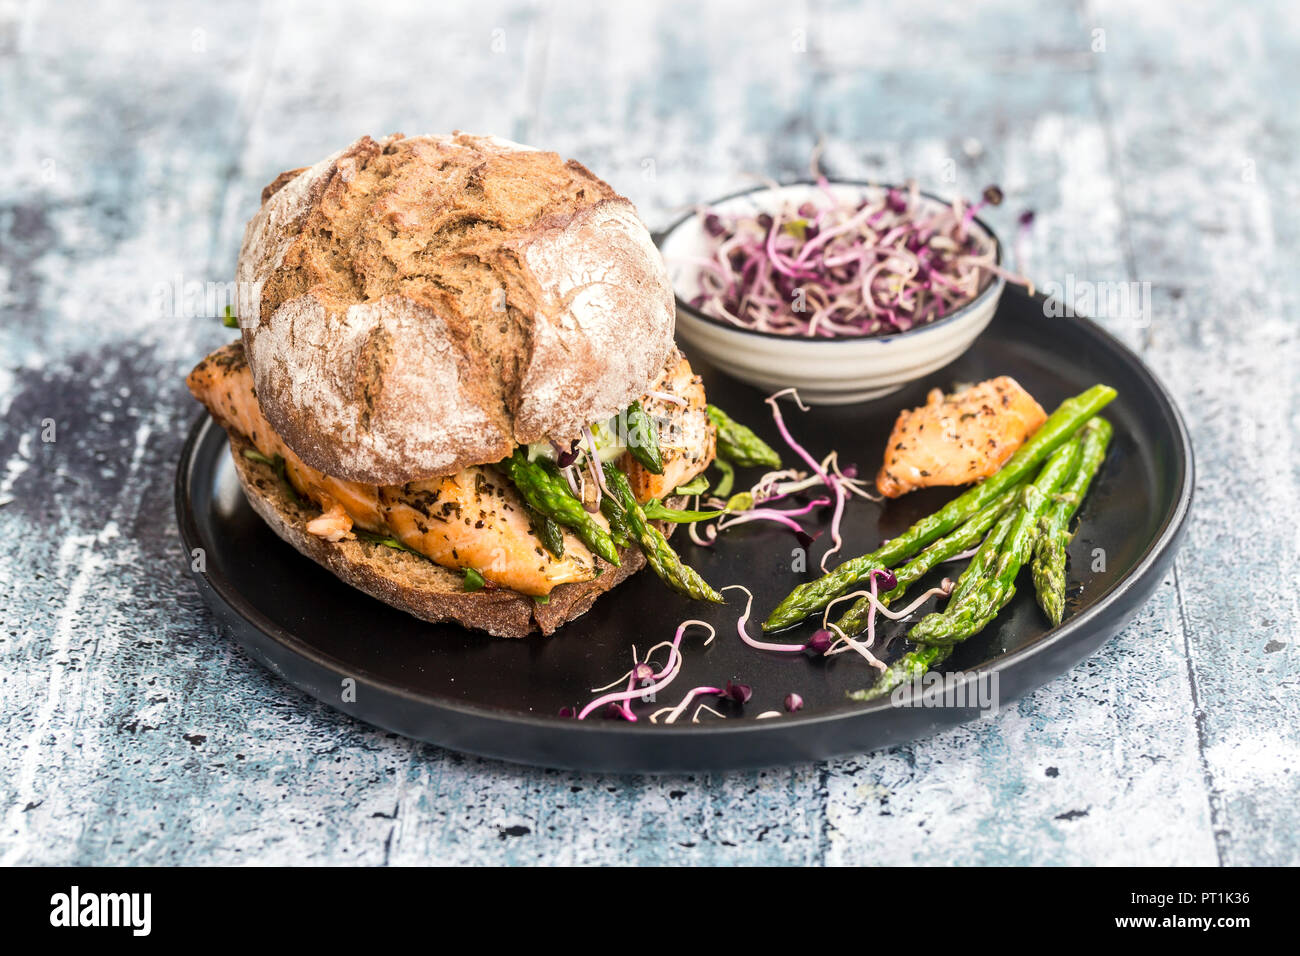 Salmon burger with green asparagus and red cress on plate - Stock Image